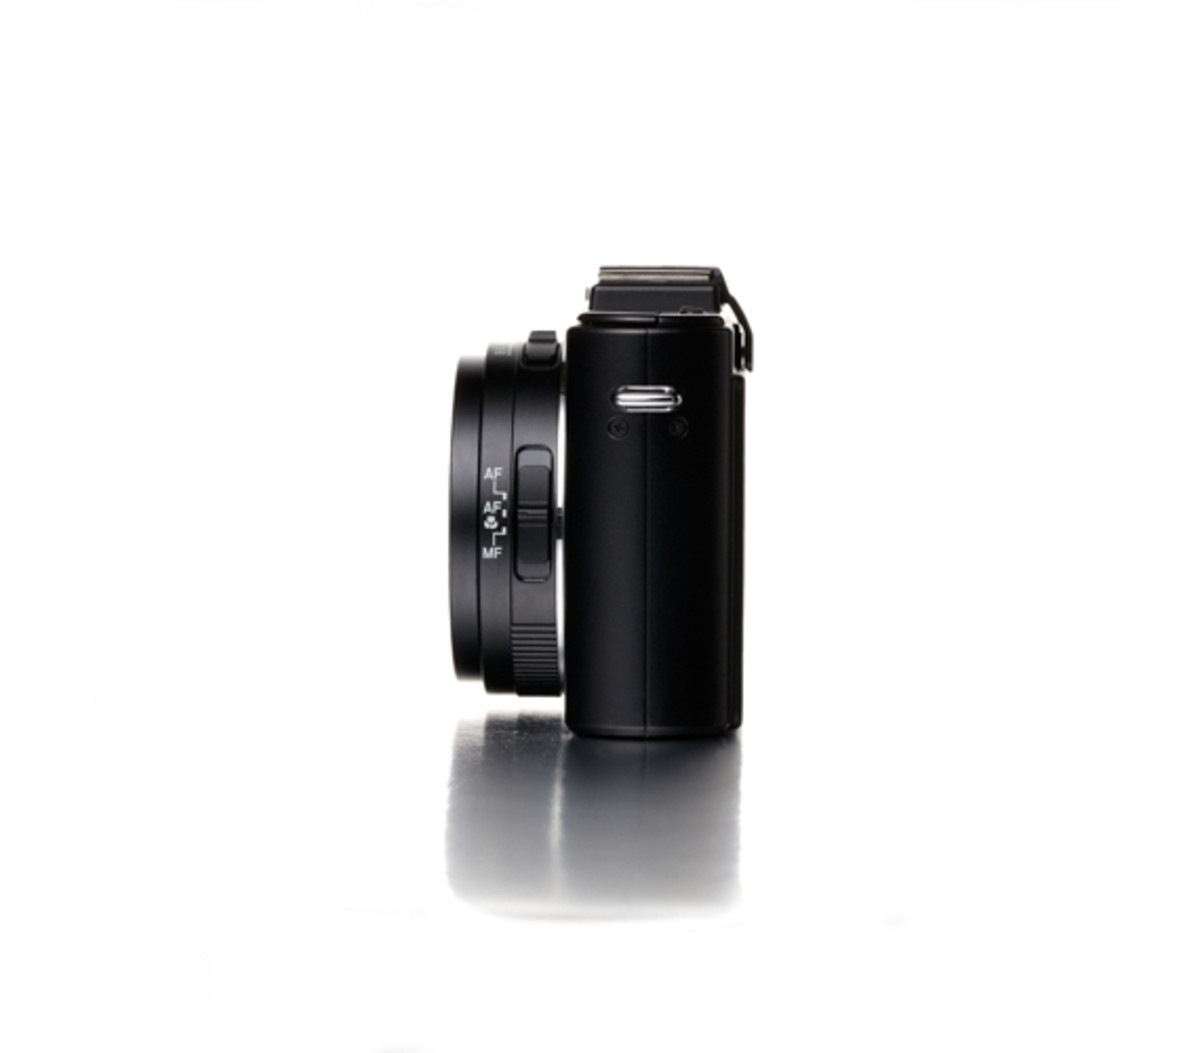 leica-x-ue-d-lux-5-detailed-look-6